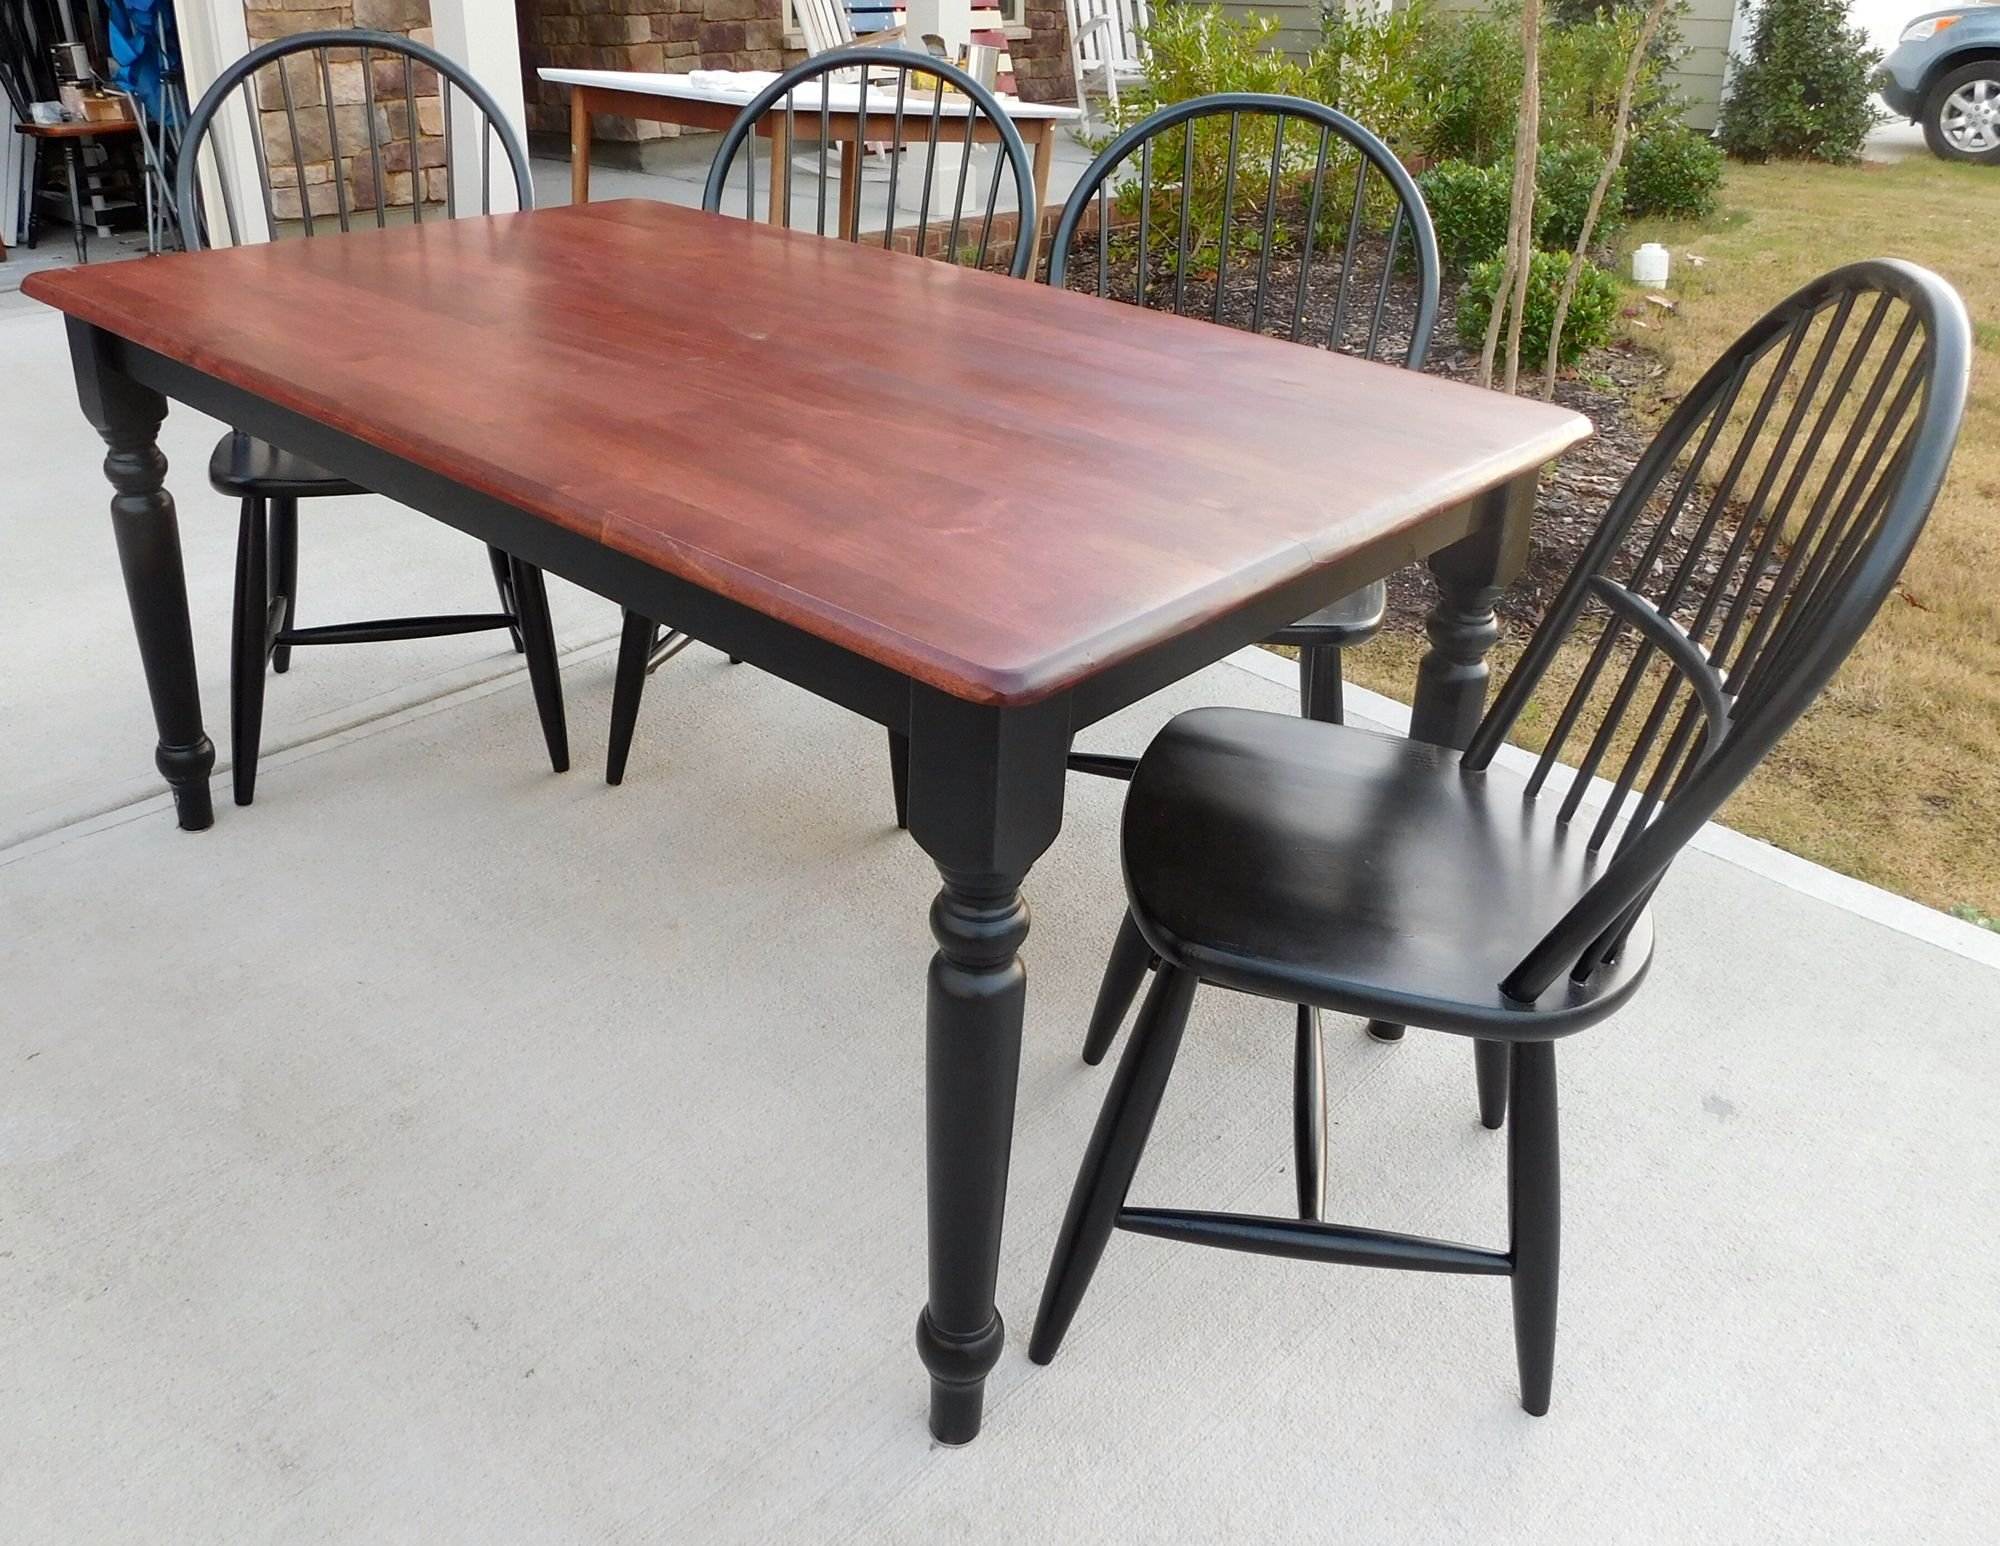 Farmhouse Table Chairs Red Mahogany Stain Flat Poly Sealed